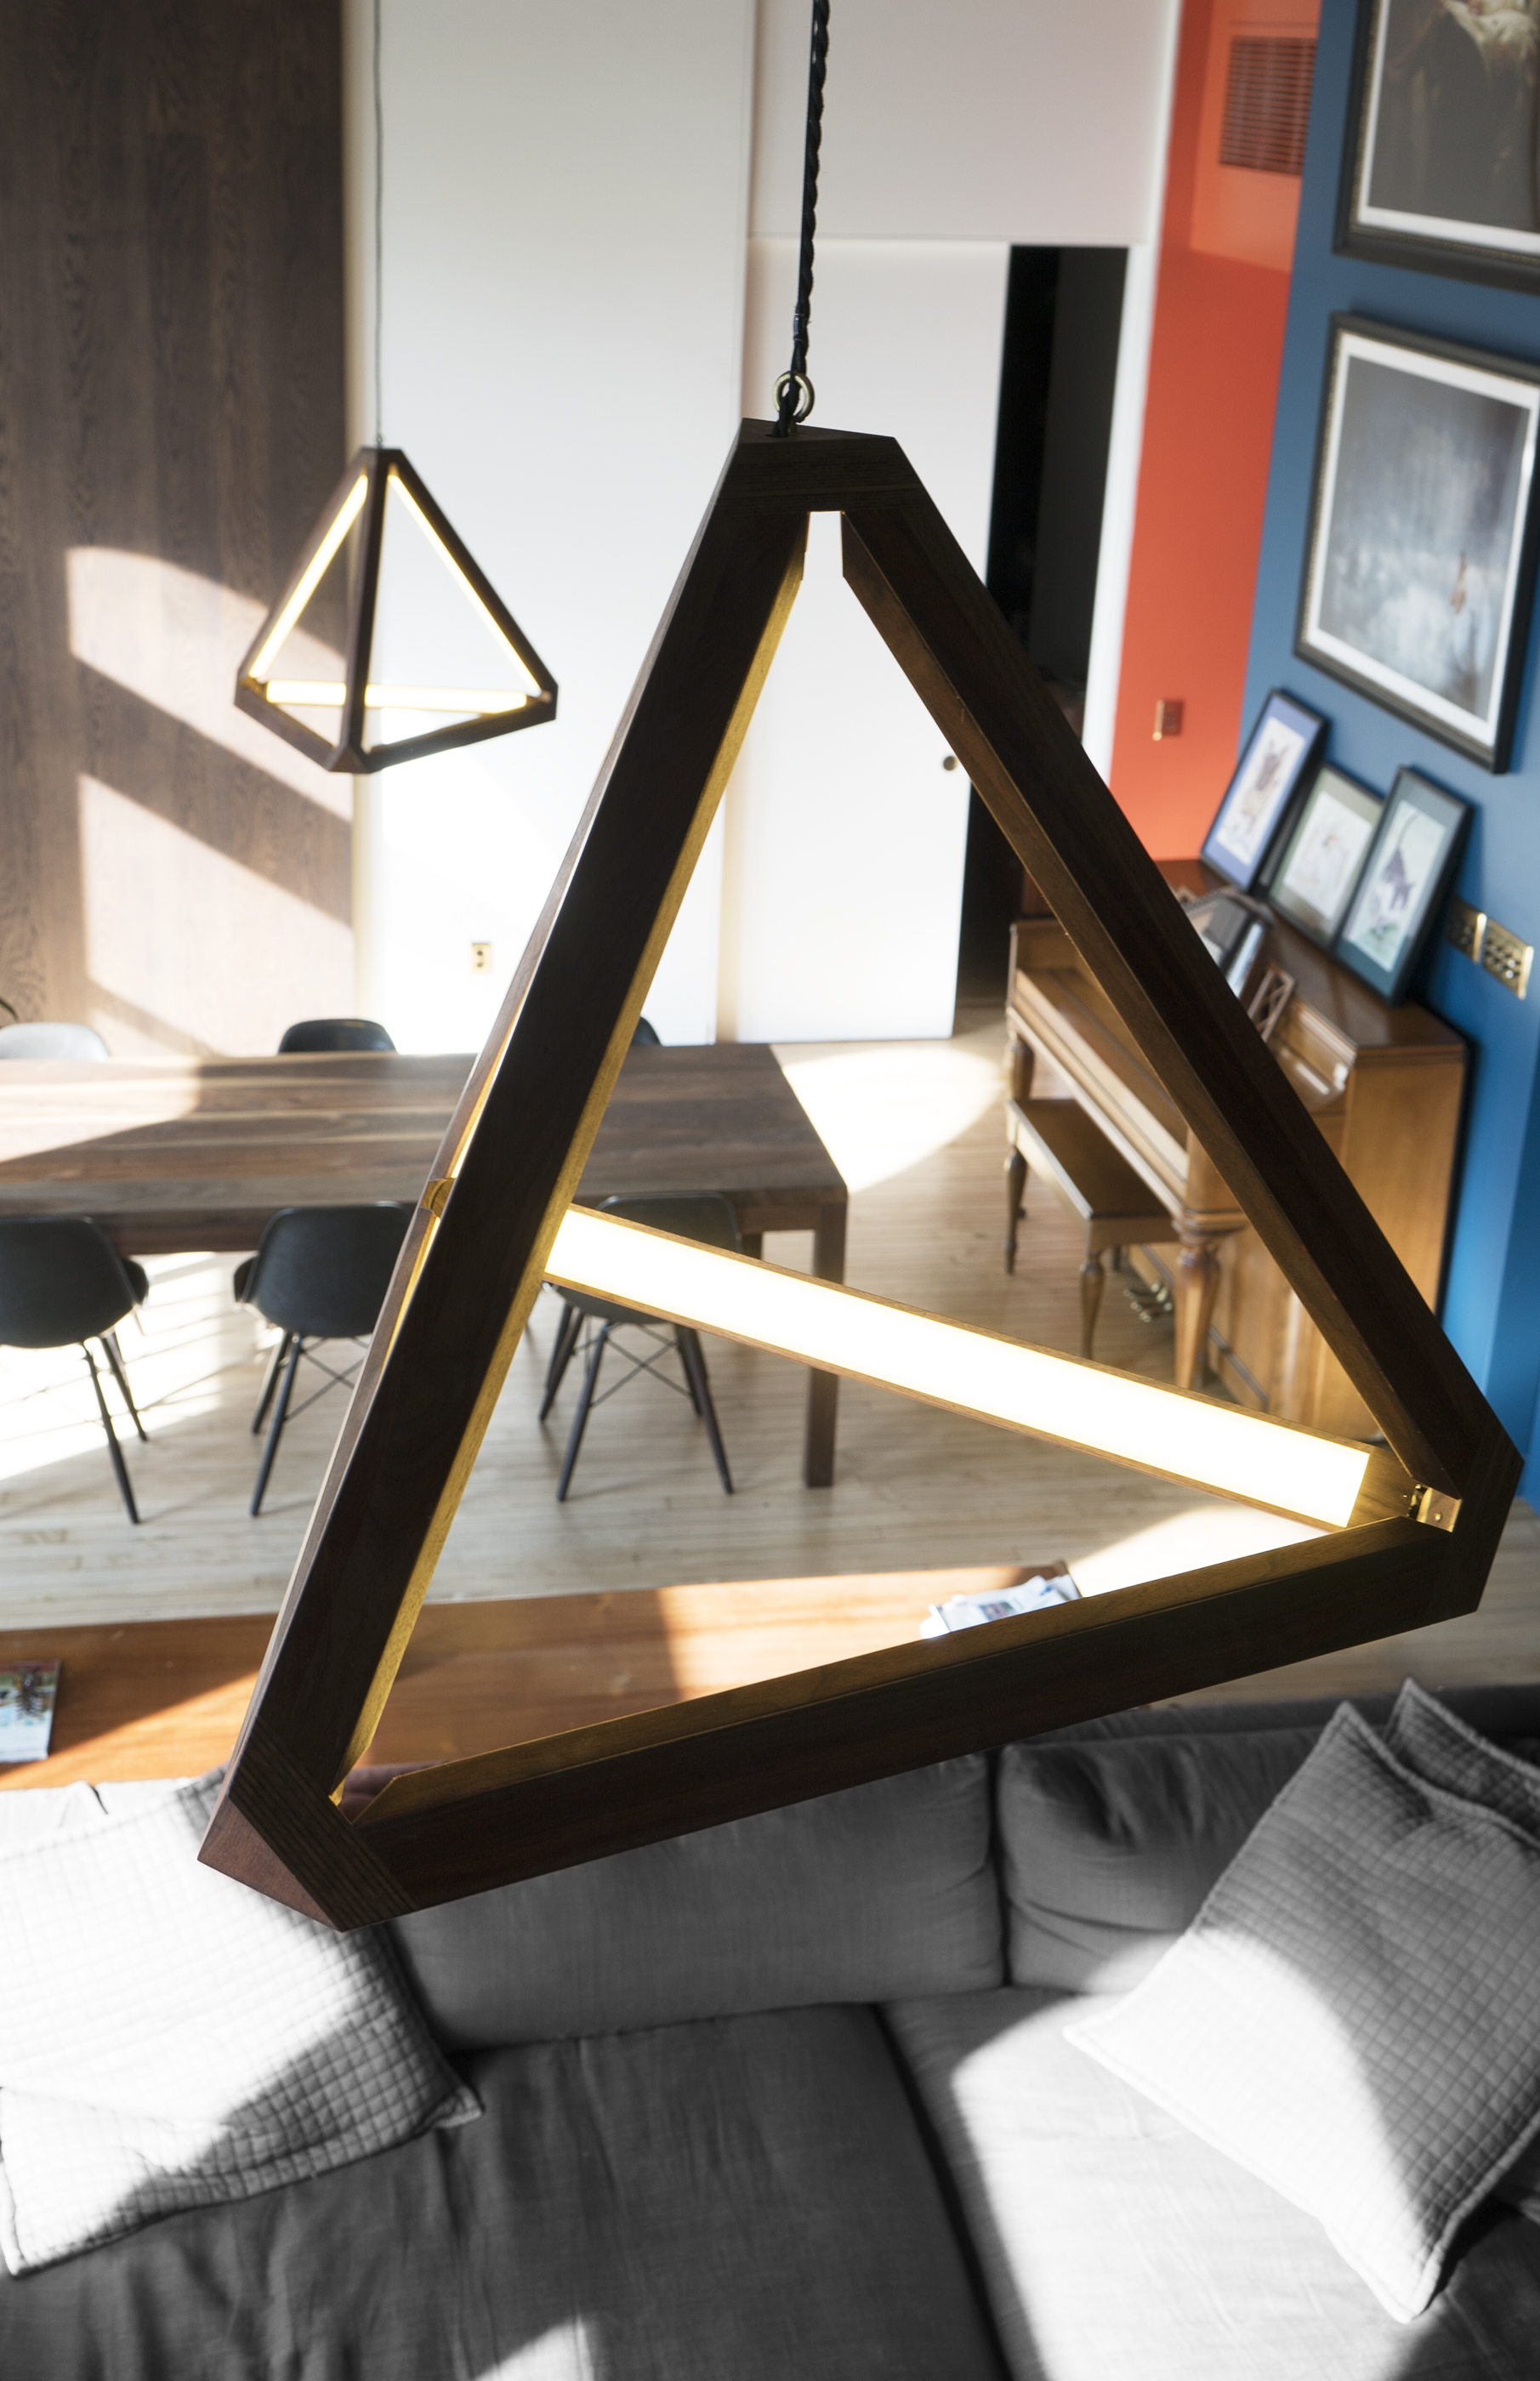 tetra-light-in-architectural-digest